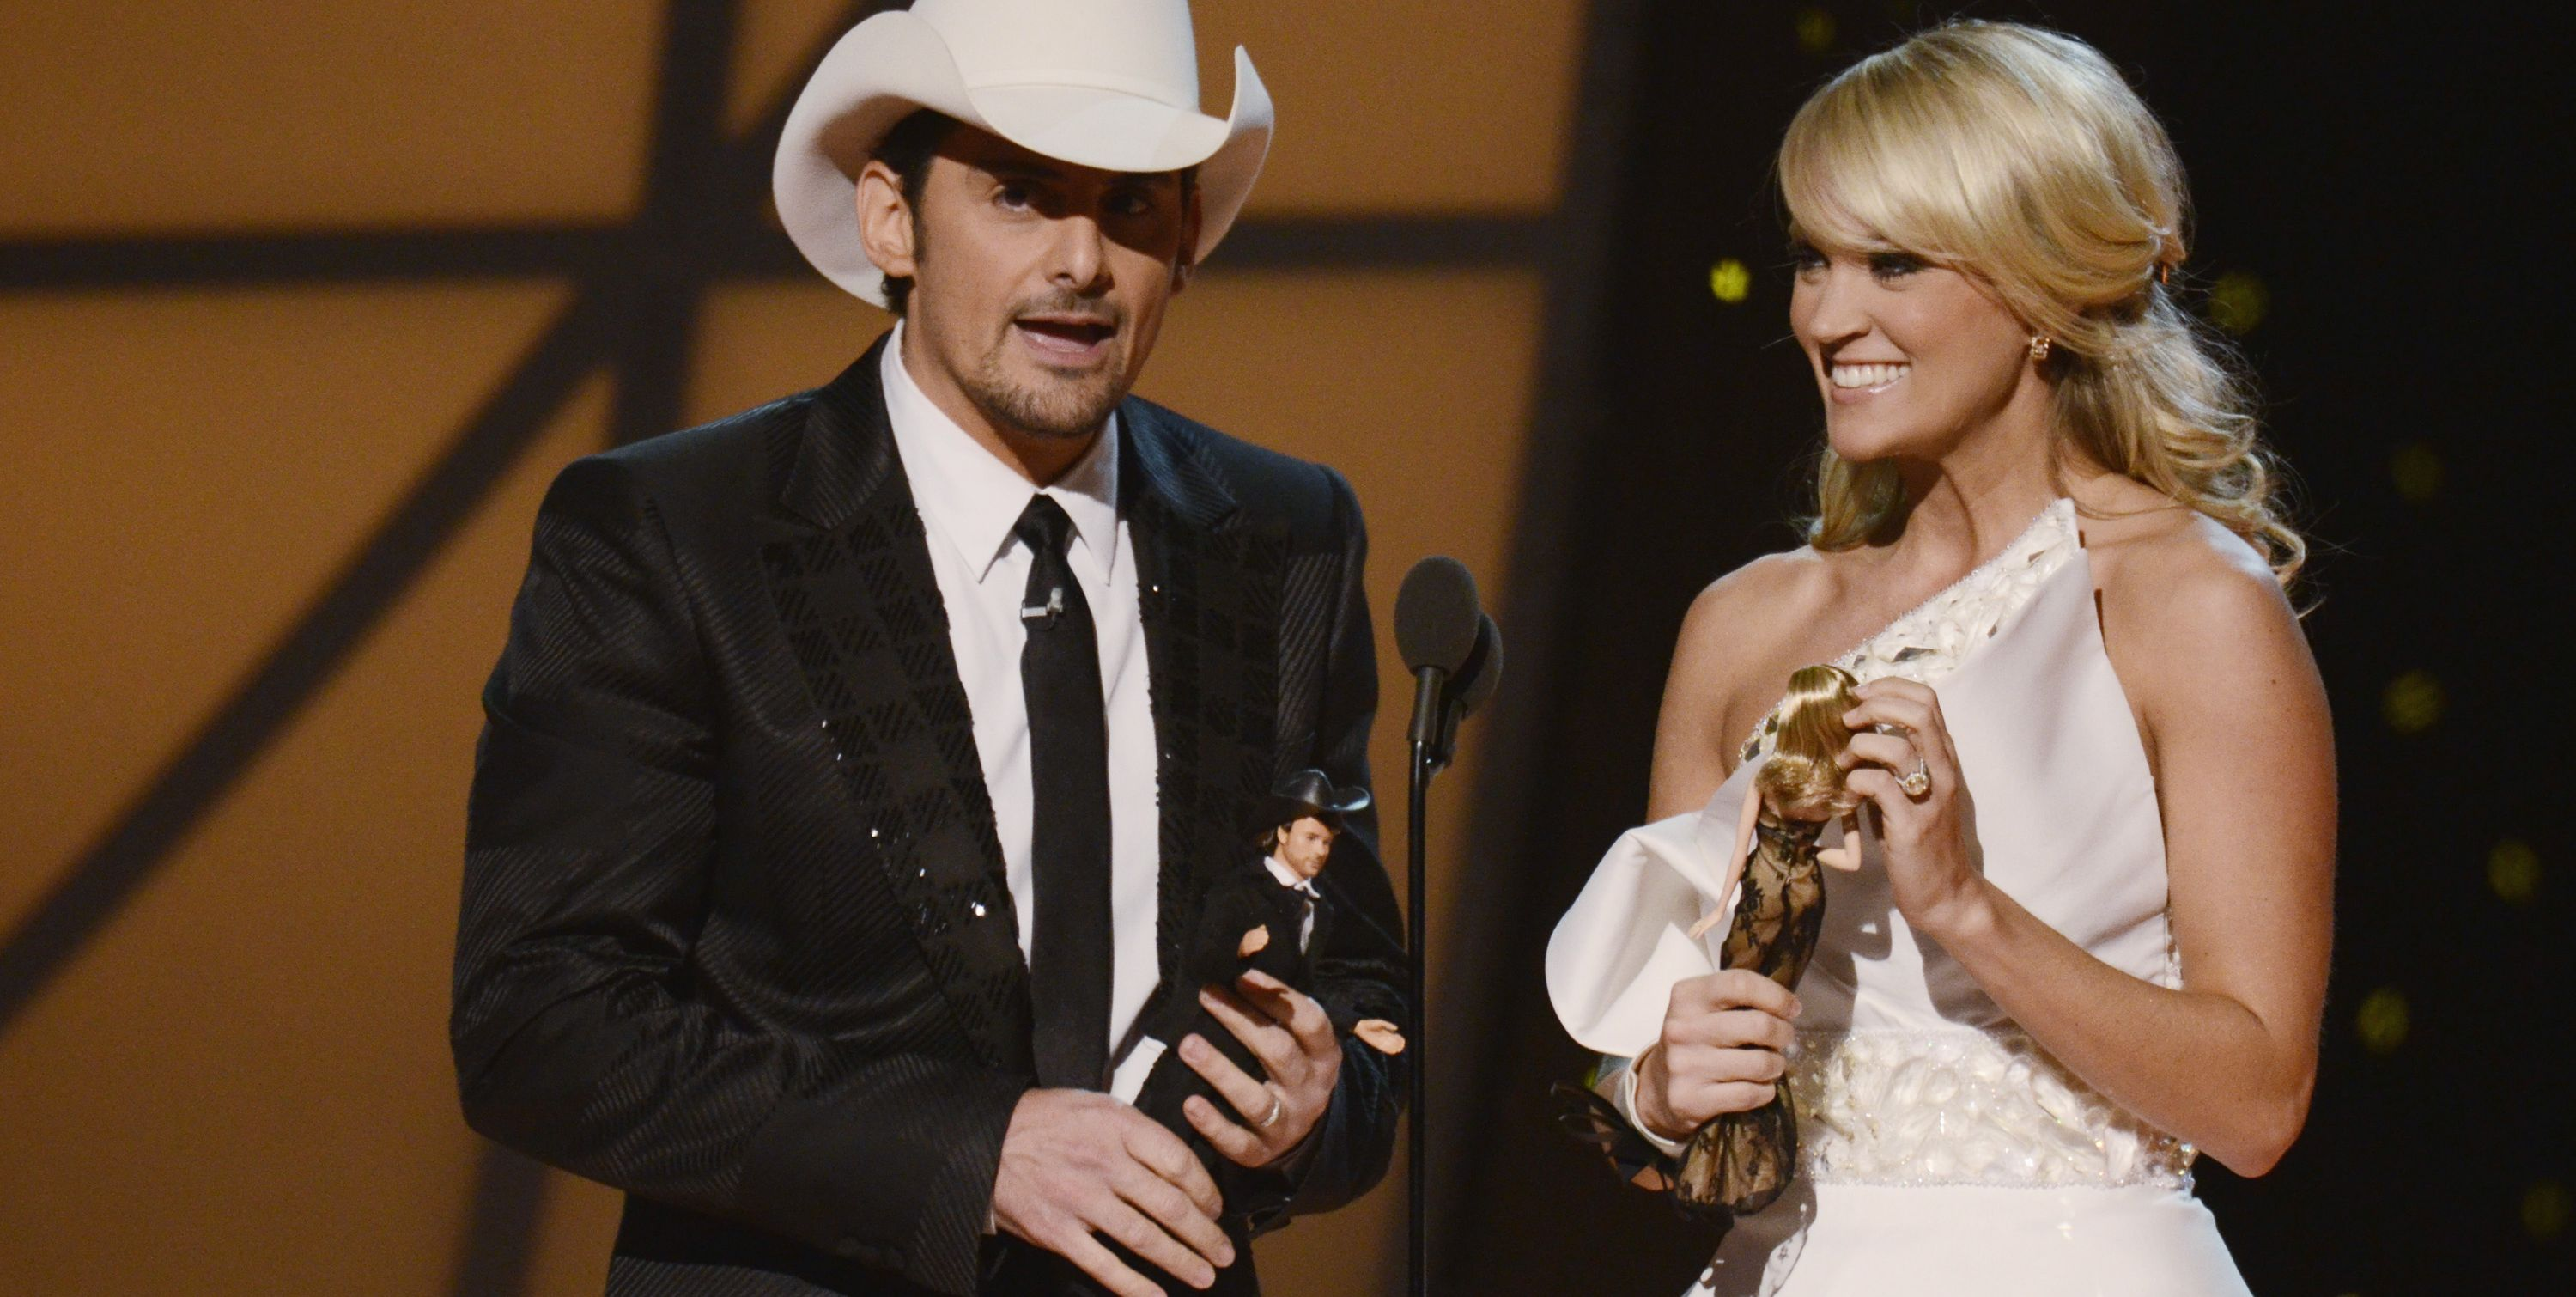 ABC's Coverage Of The 45th Annual CMA Awards